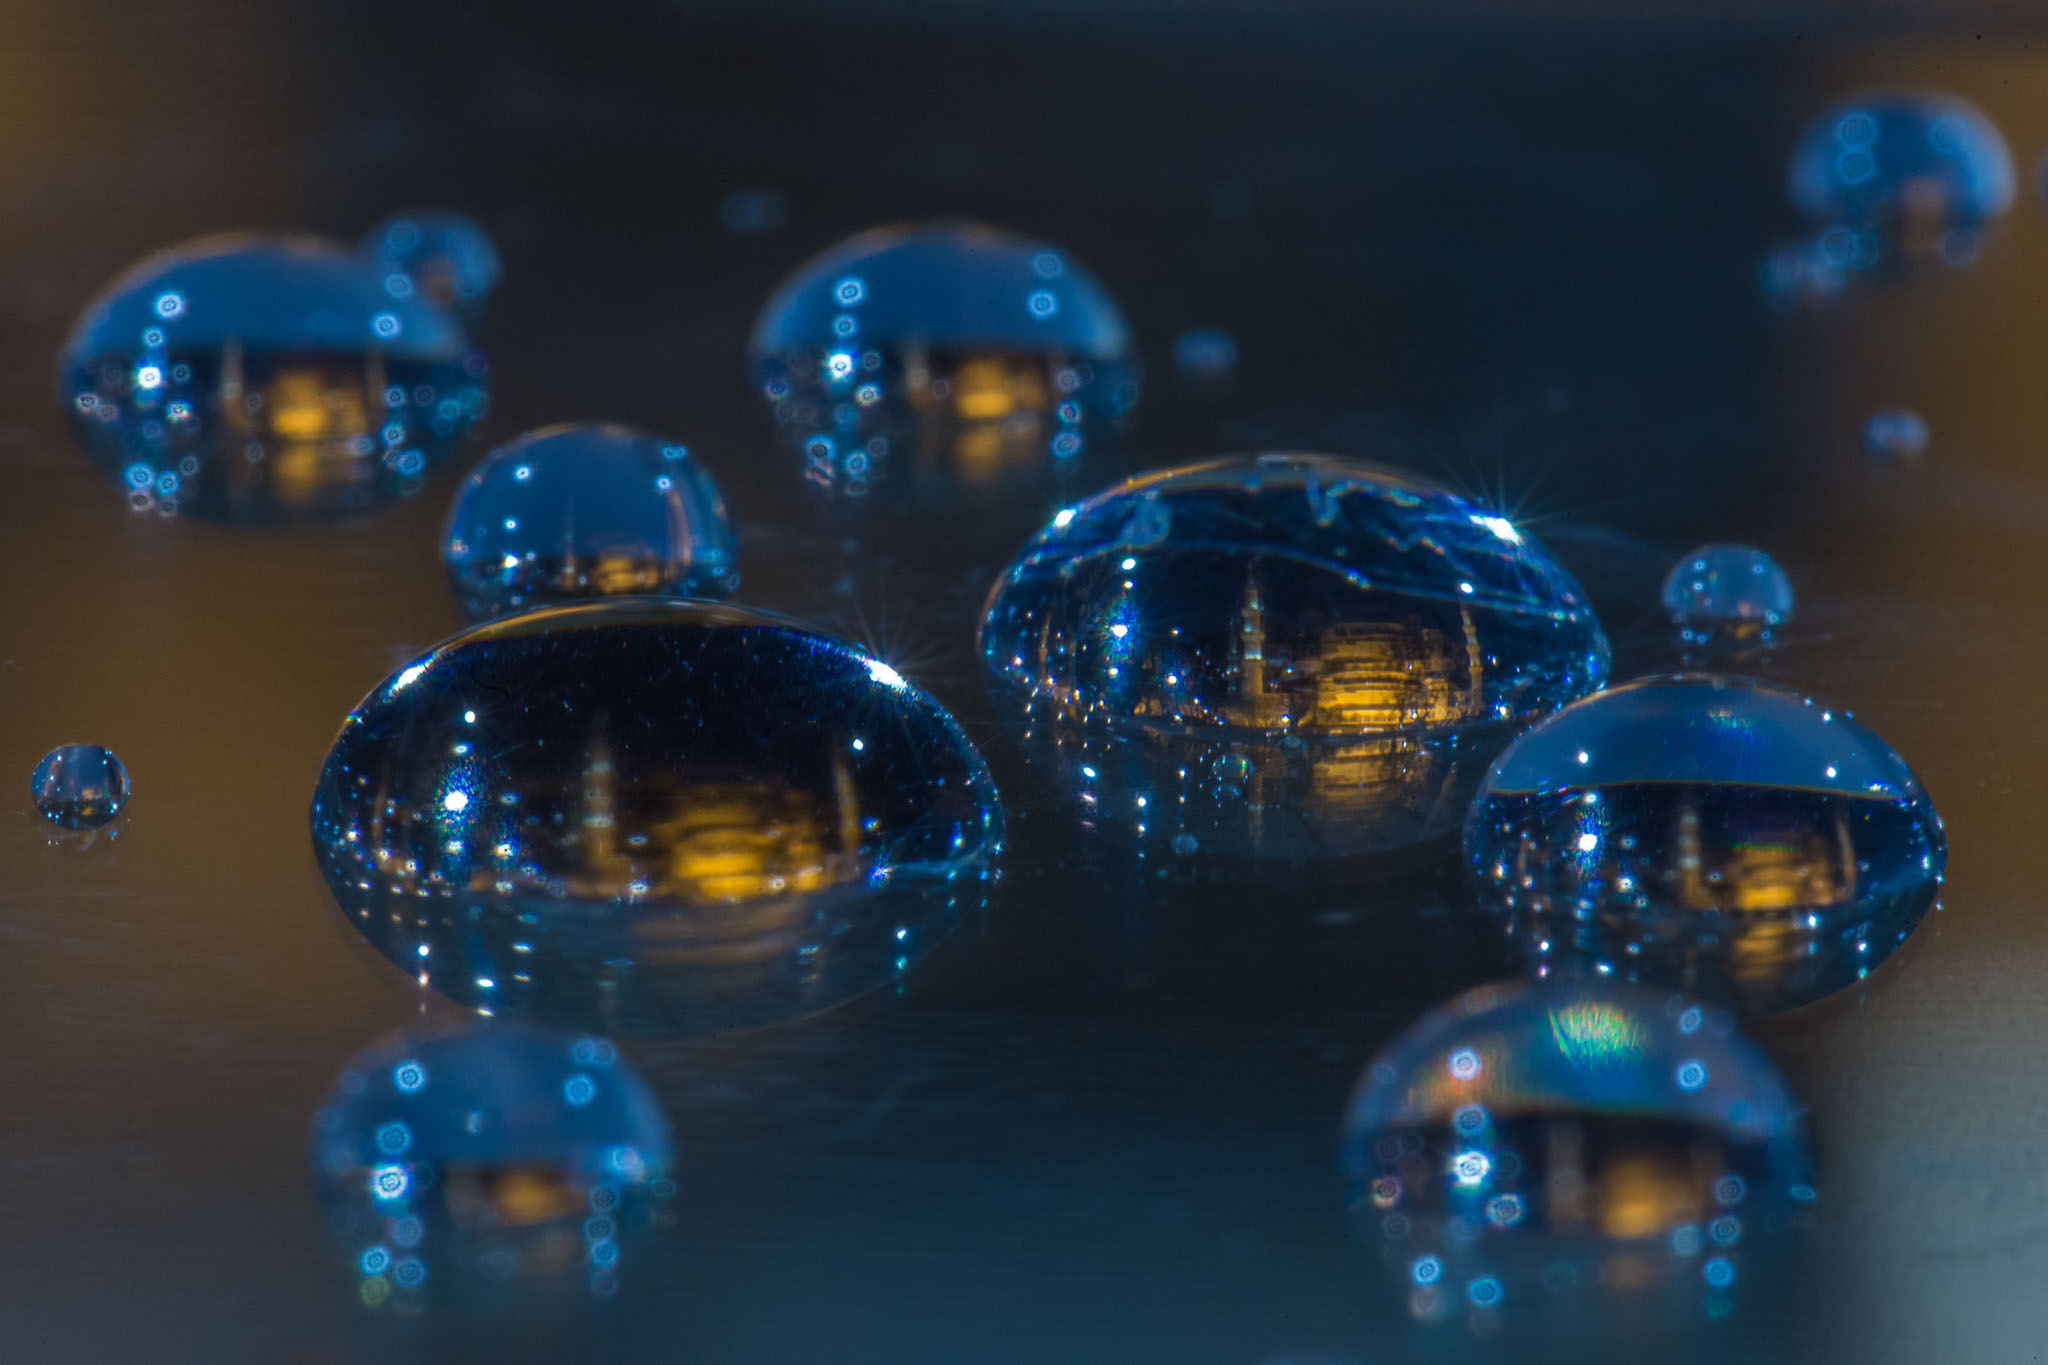 Macro photography project shows cities captures in tiny drops of water - Lonely Planet Travel News. Article by James Gabriel Martin. Photographs by Dusan Stojancevic